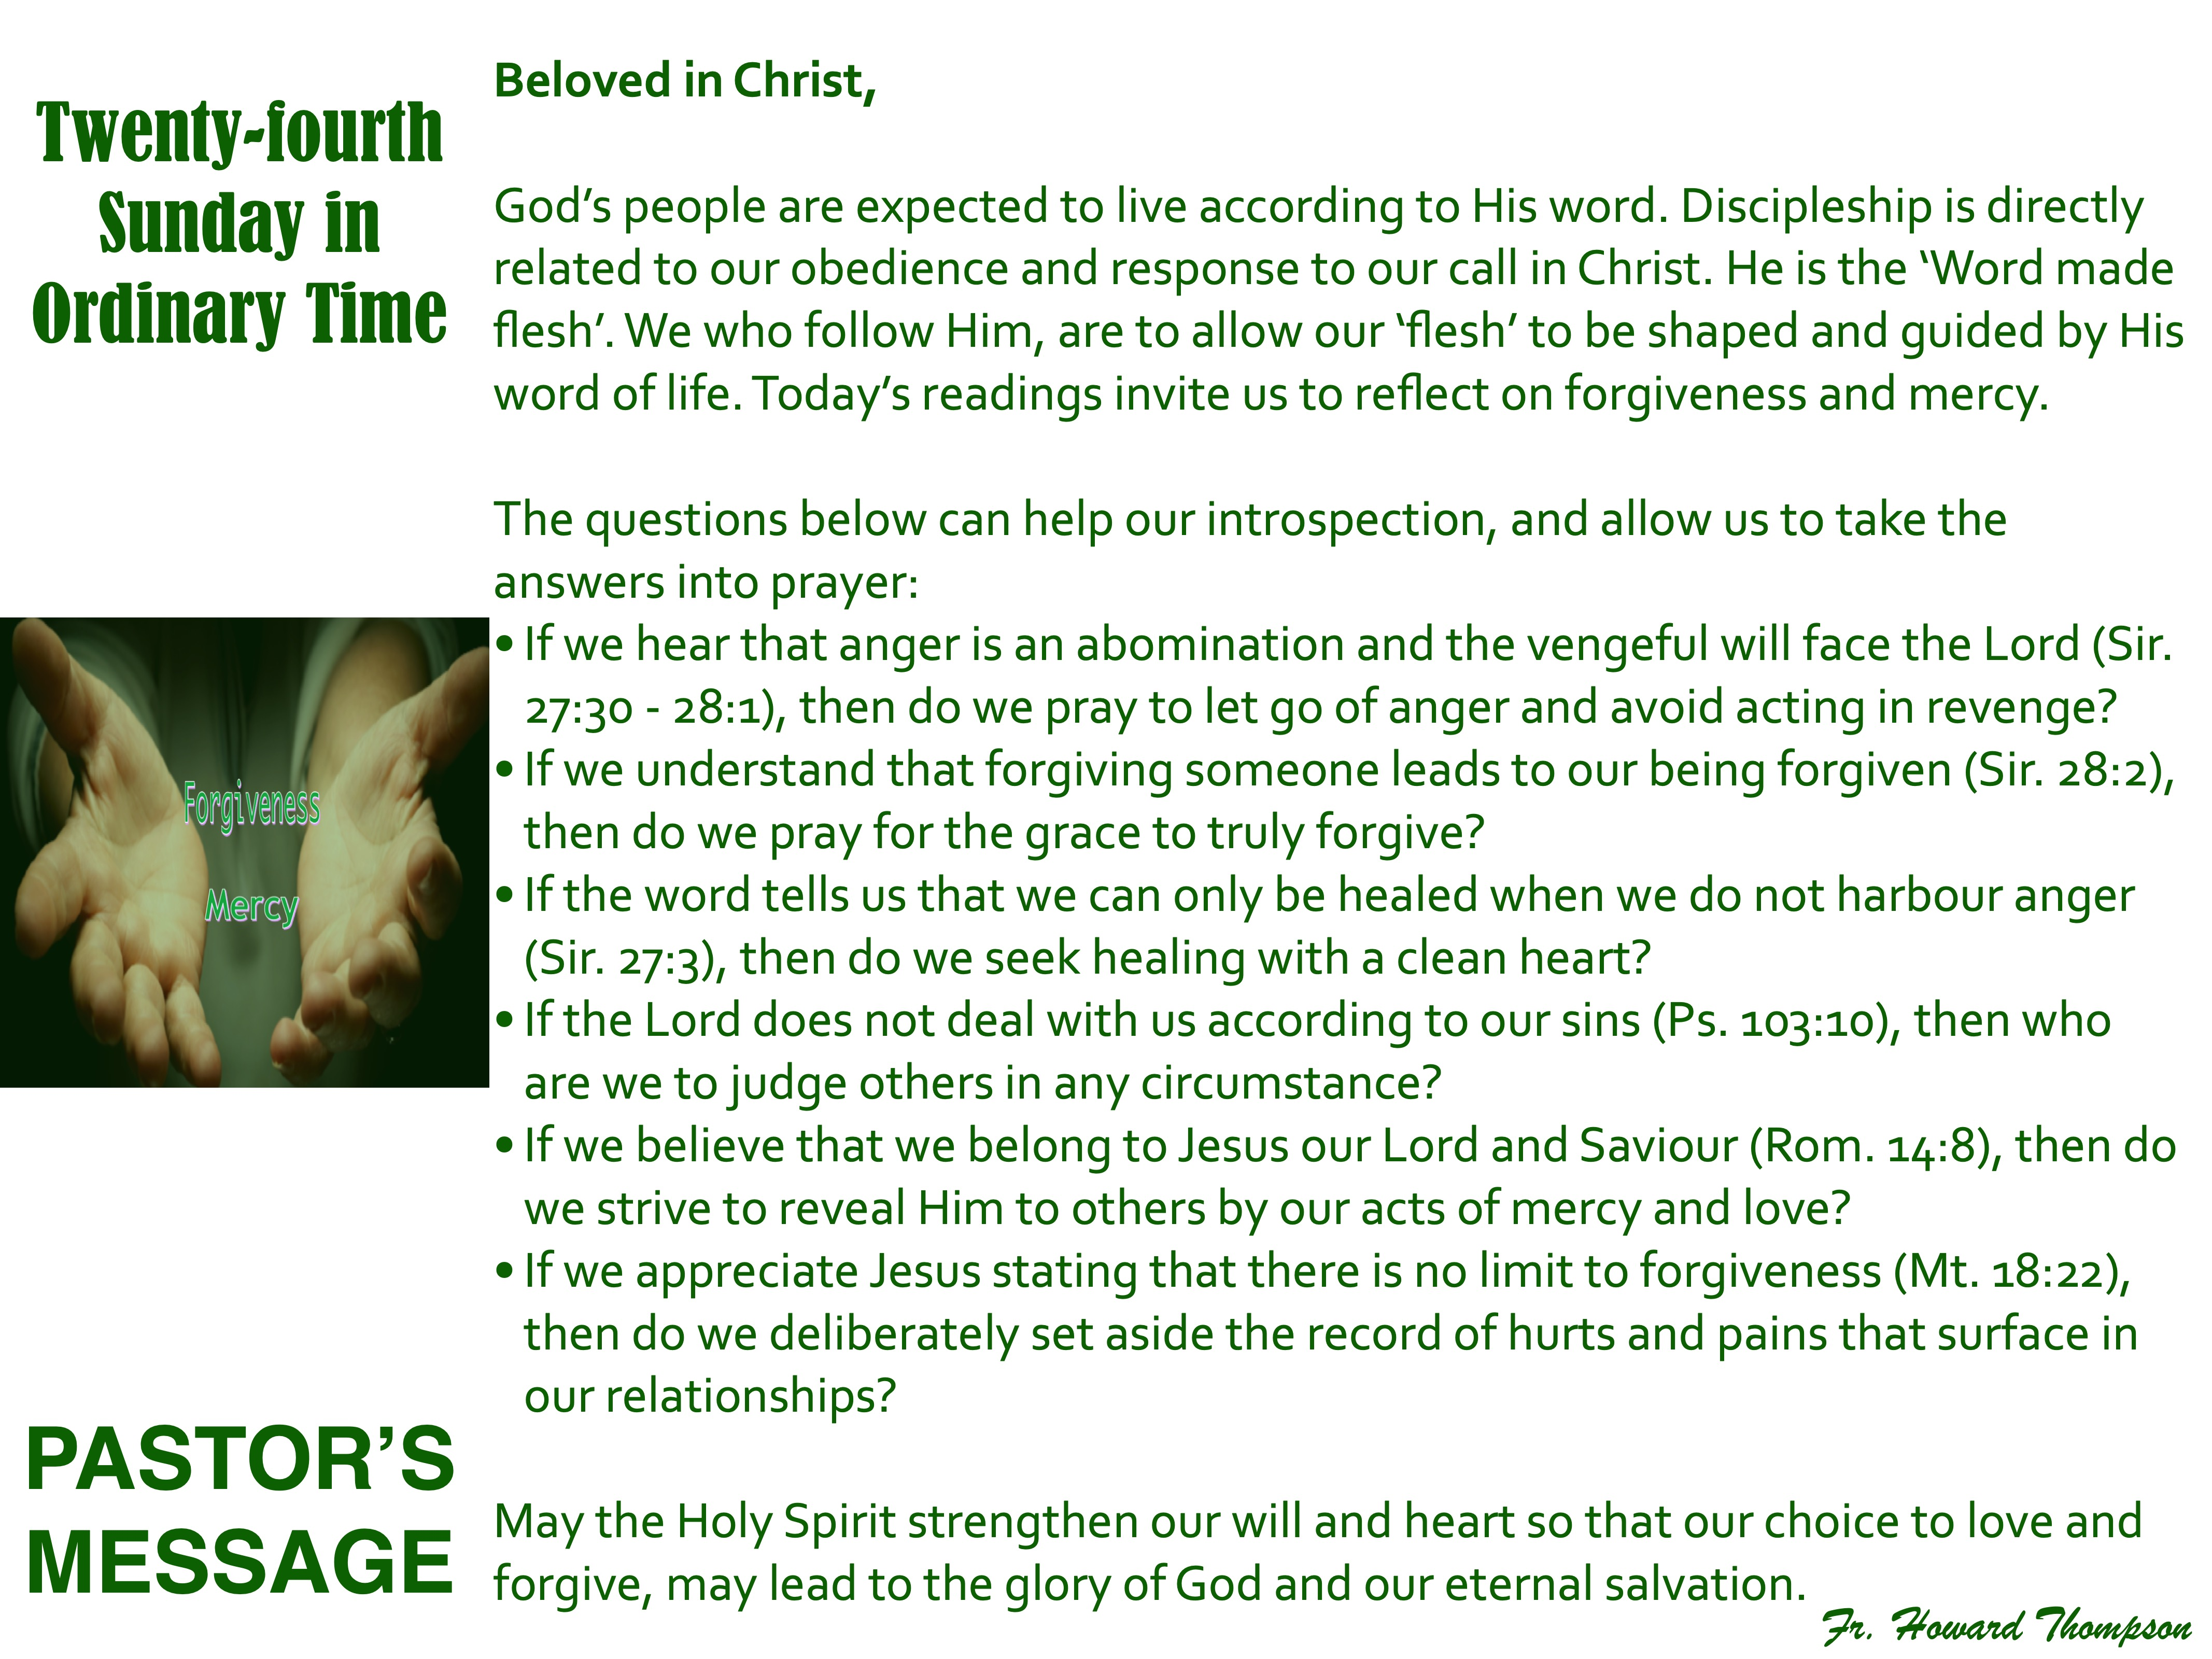 Pastor's Message - 130 Twenty-fourth Sun